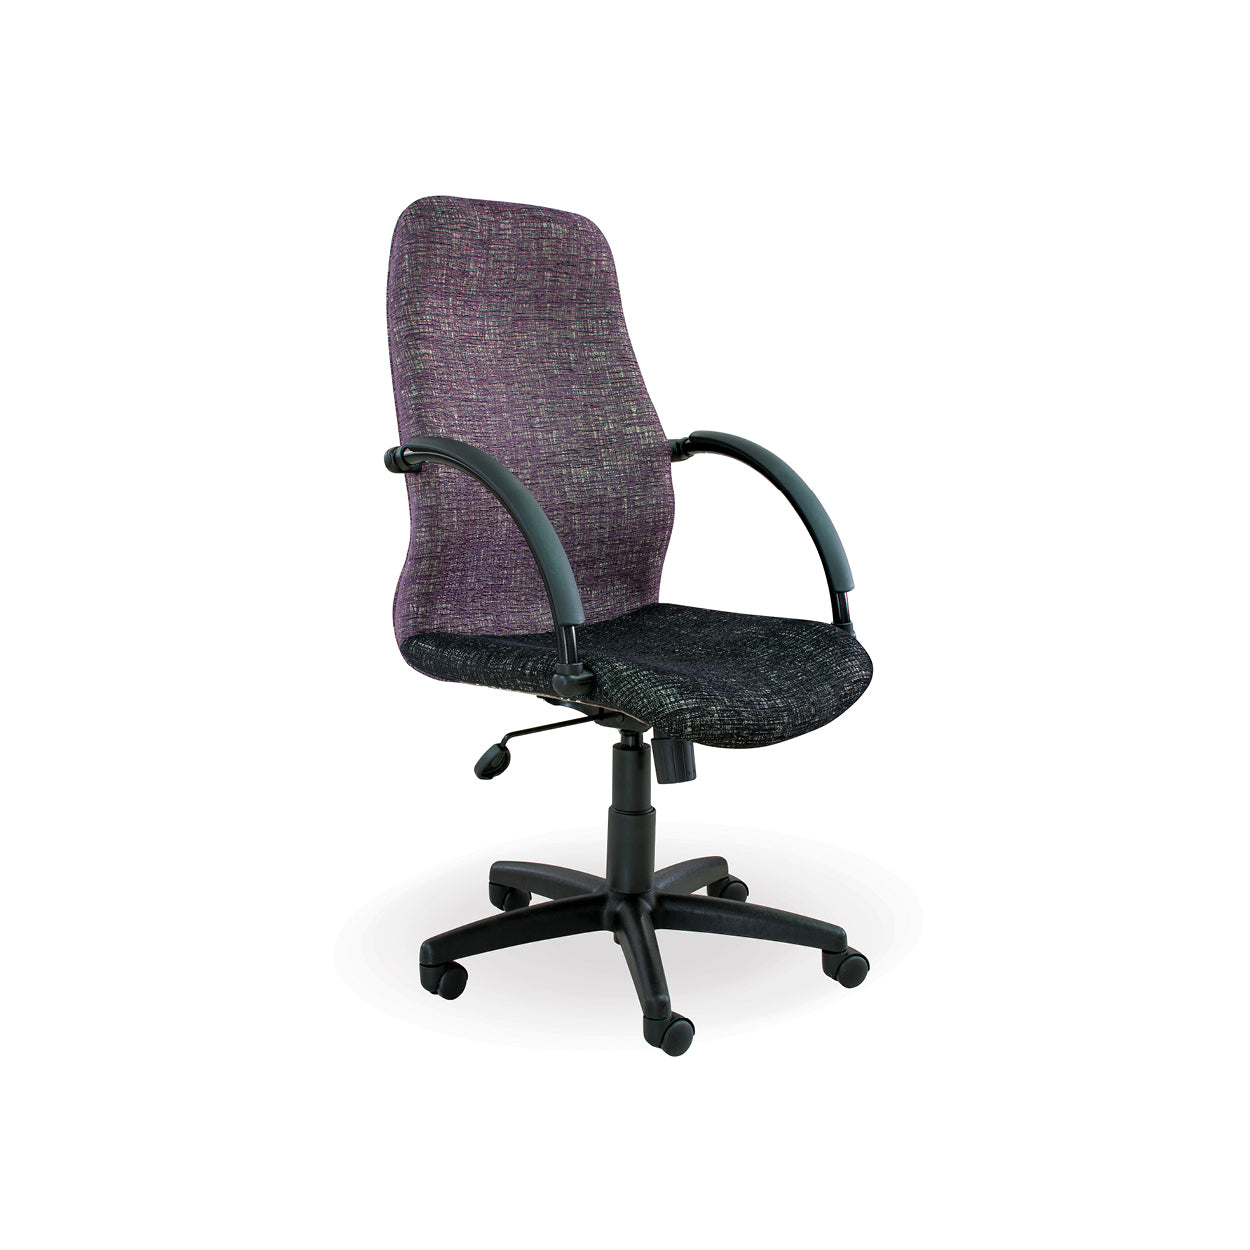 Hedcor office chair